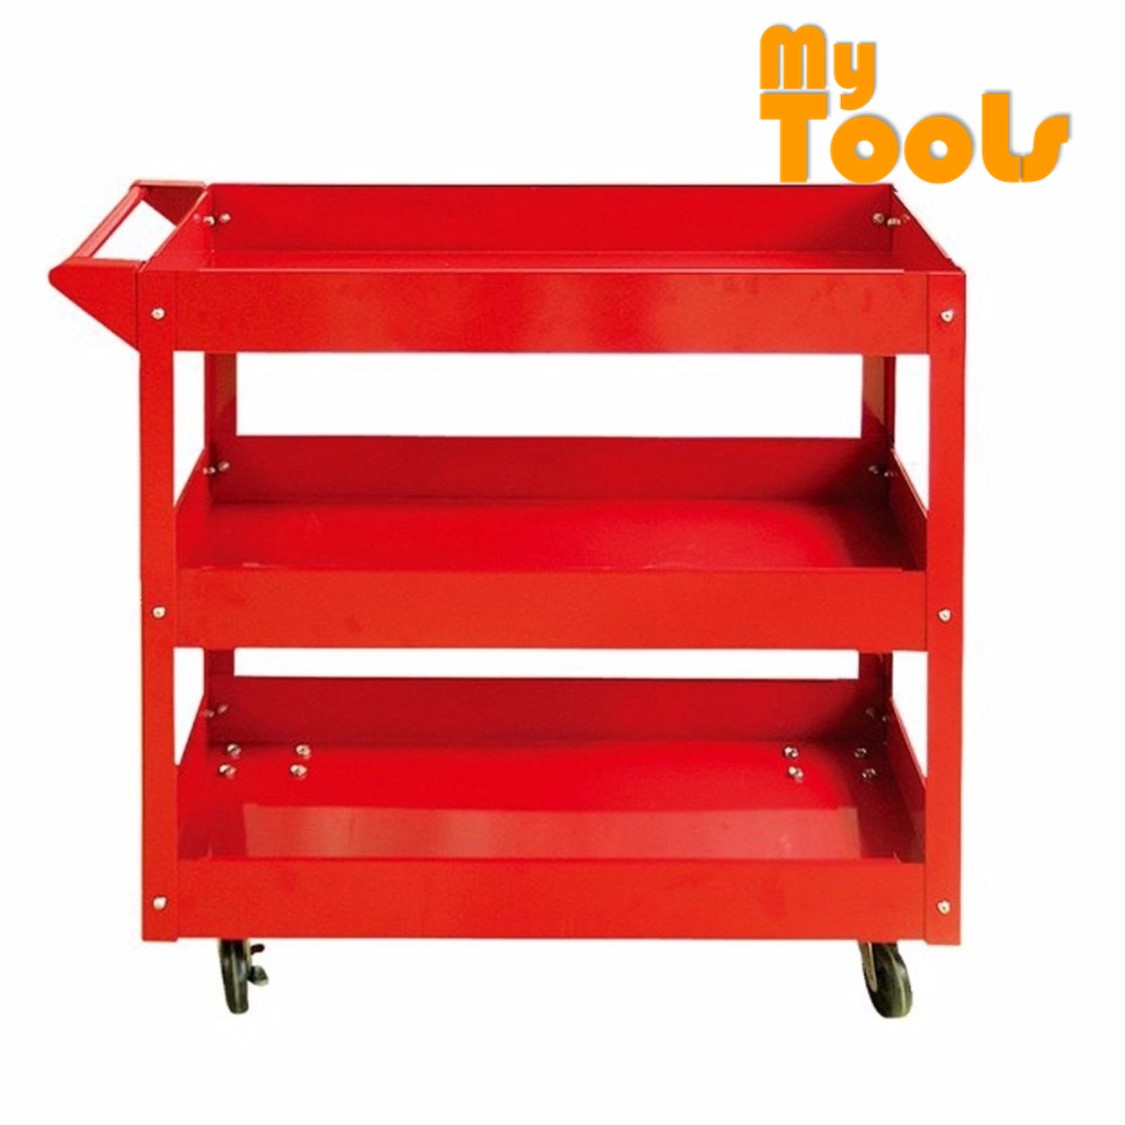 3 Layer Service Cart Tools Trolley 120kg